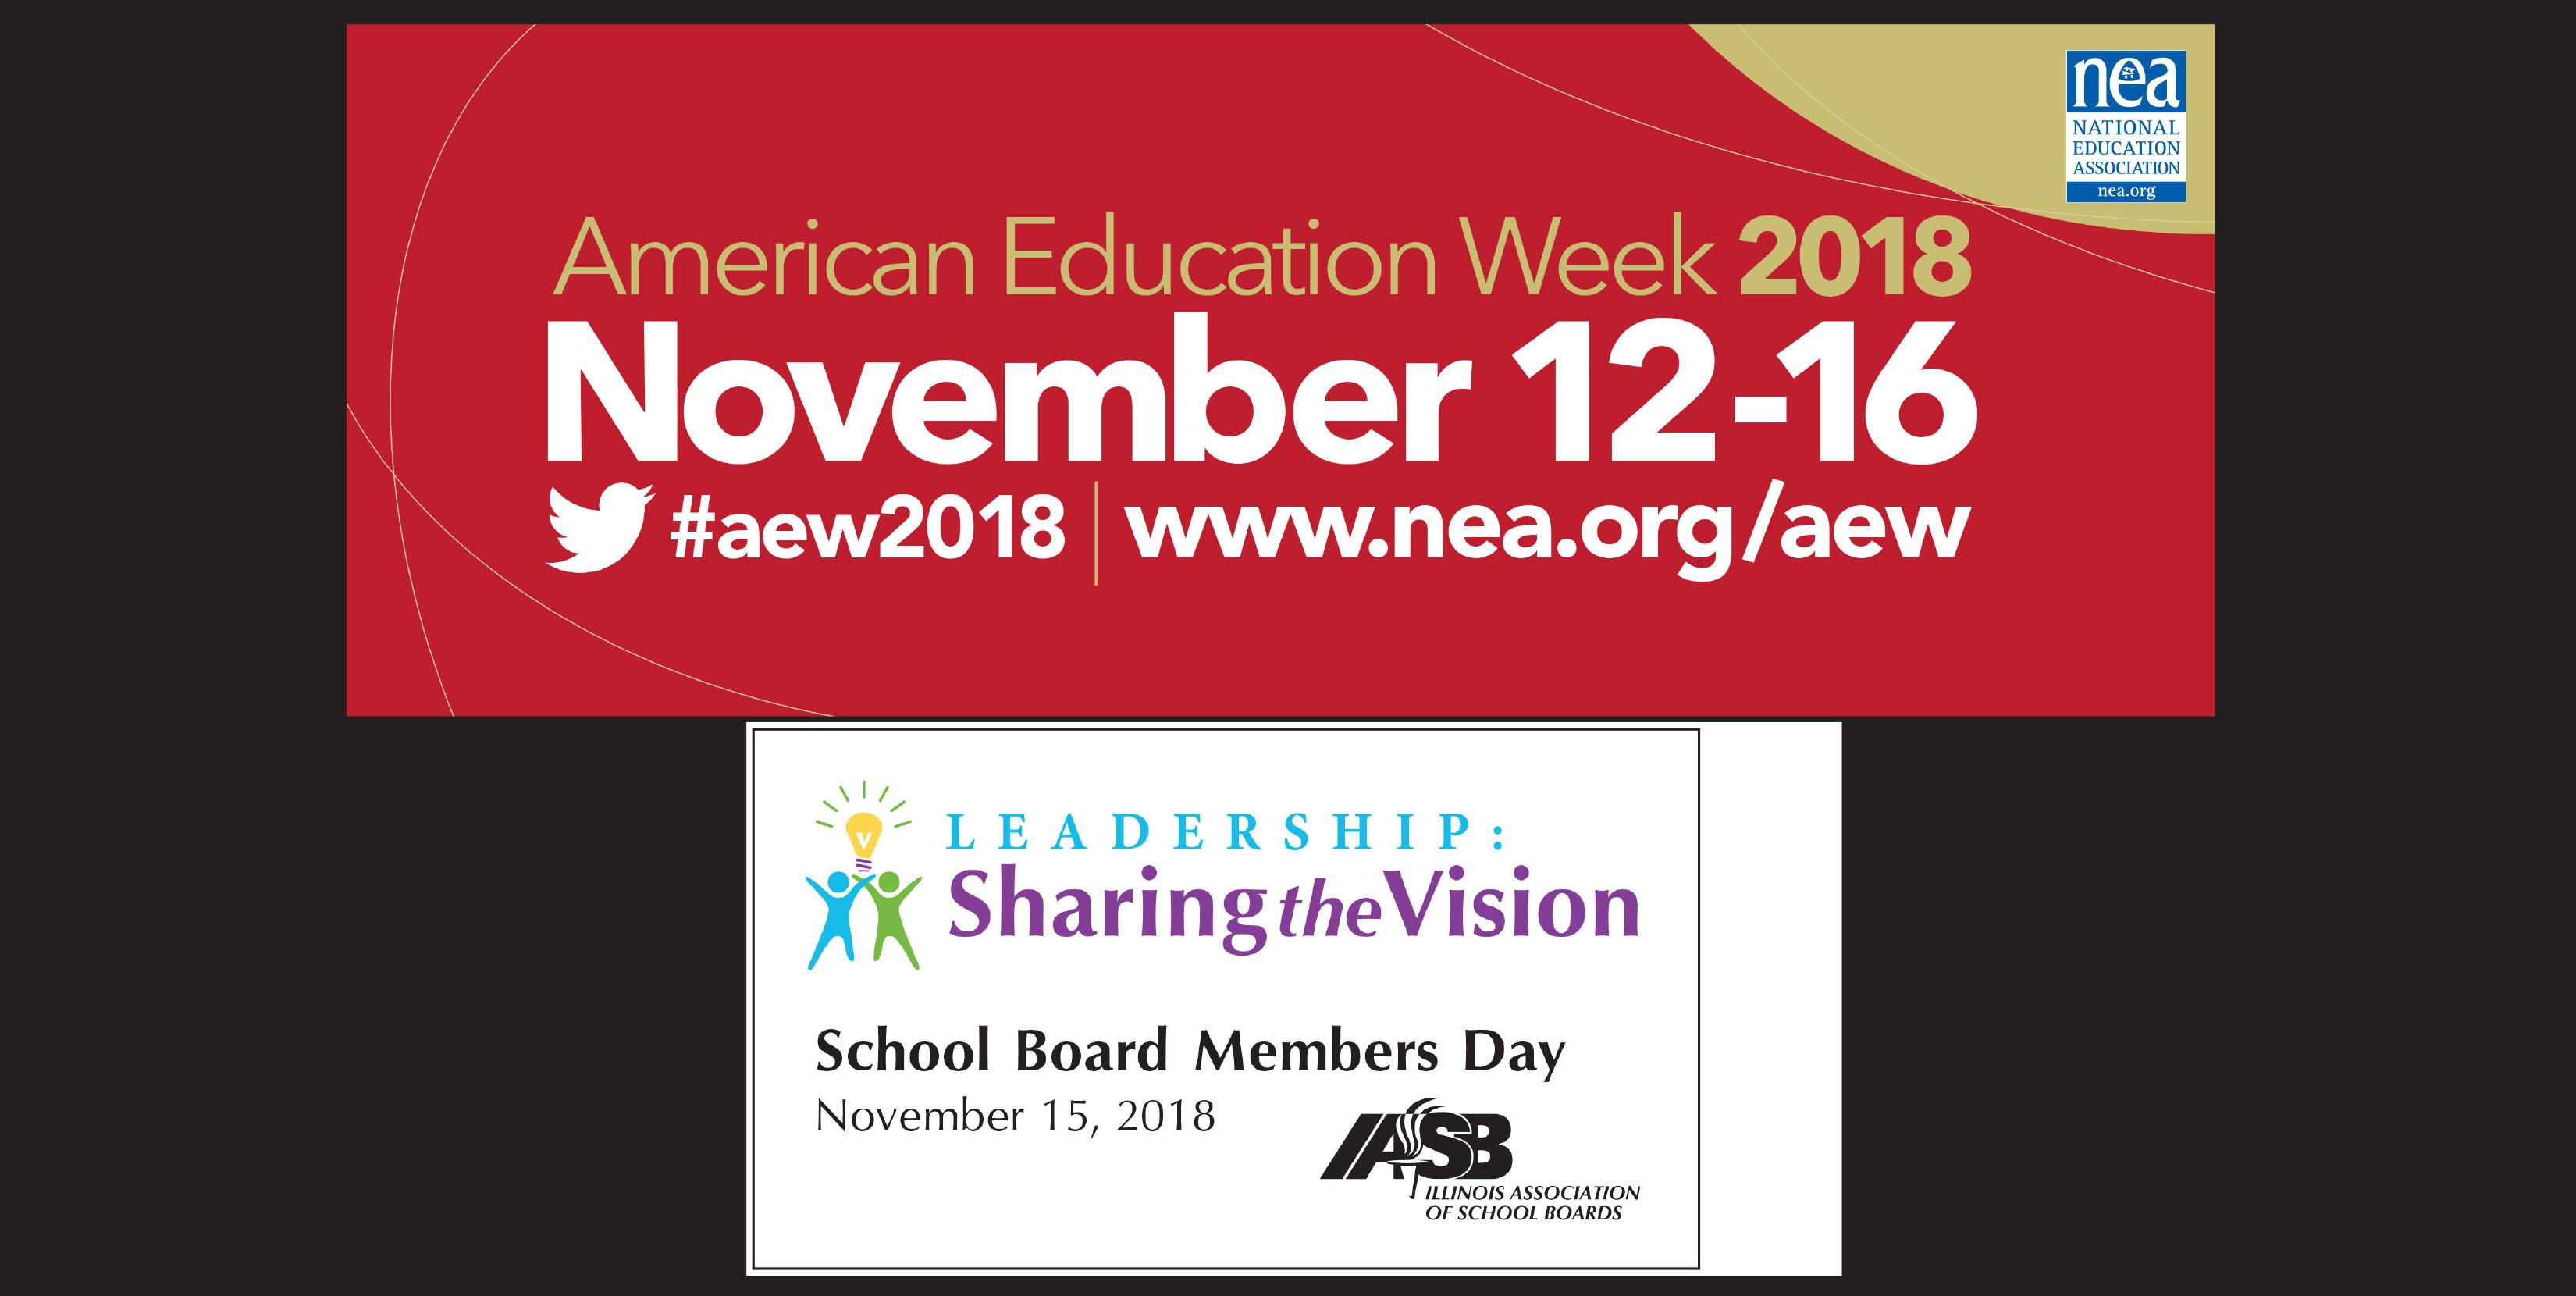 District 88 celebrates School Board Members Day and American Education Week